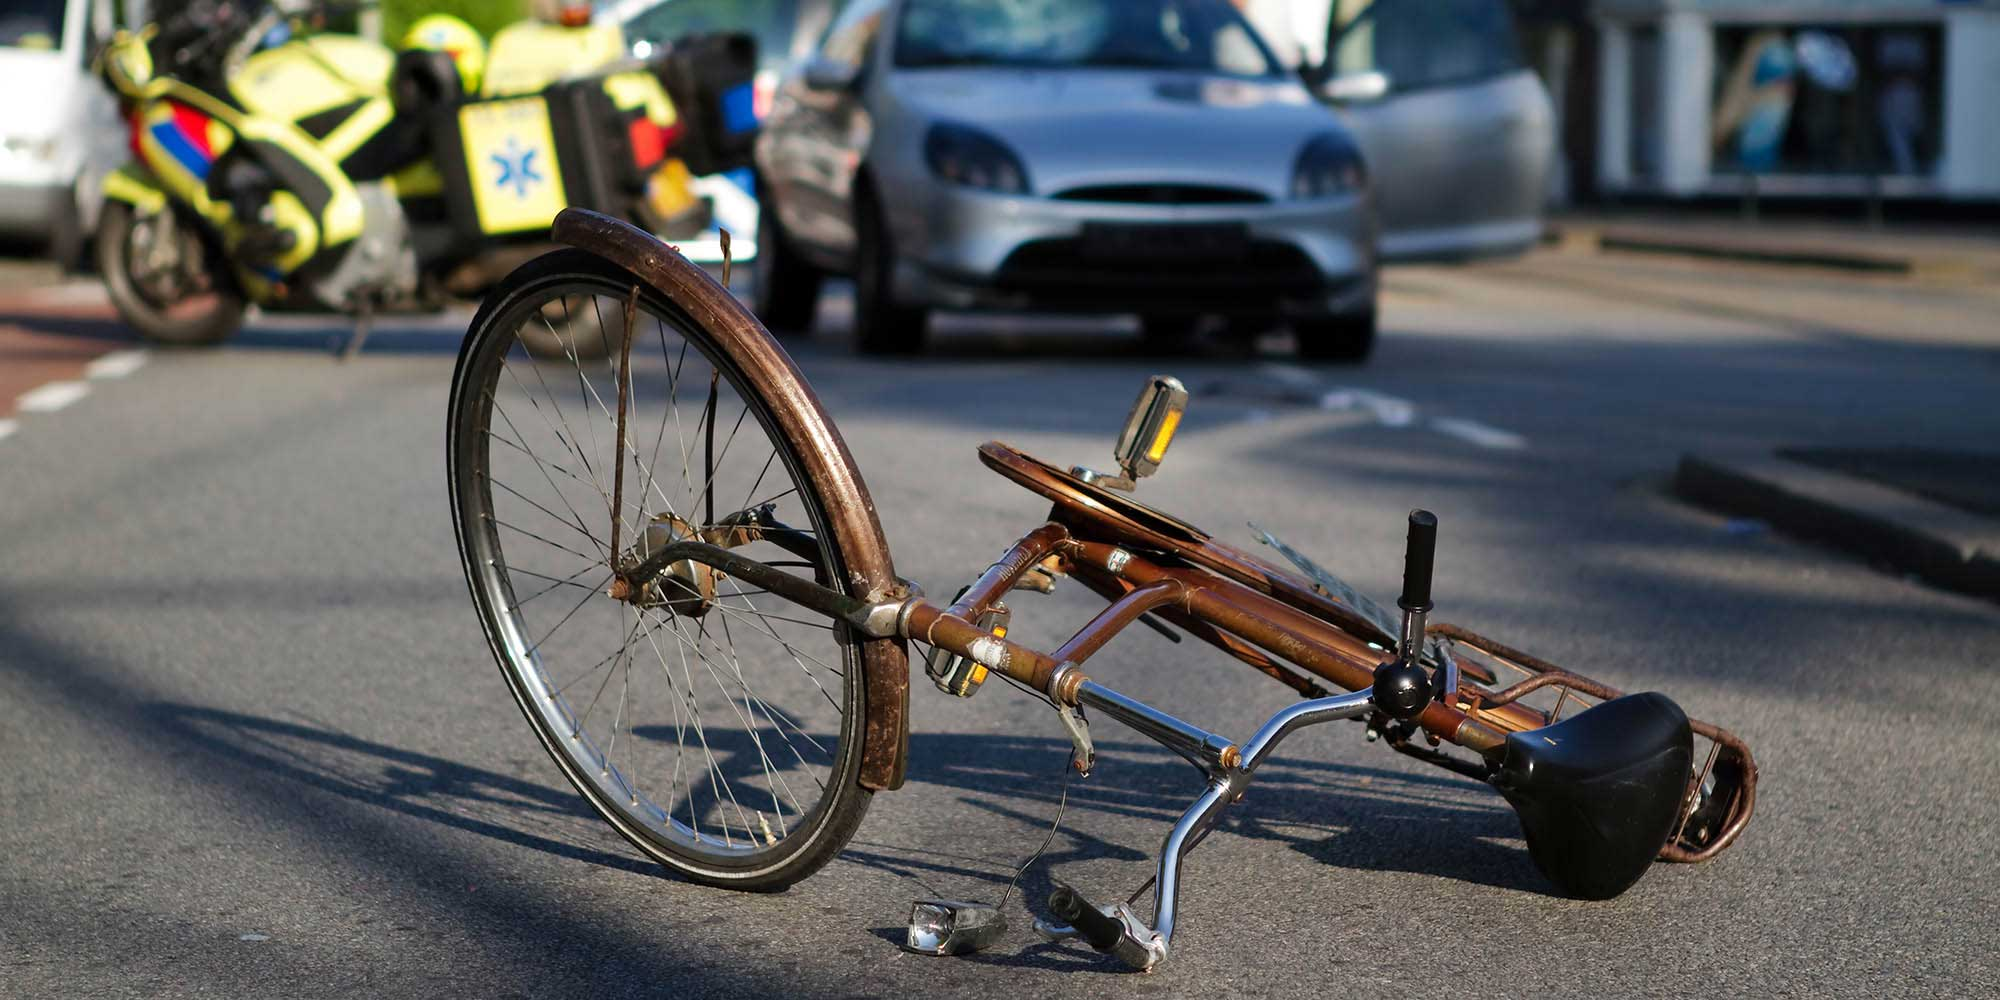 Bicycle Accident Claim injuries